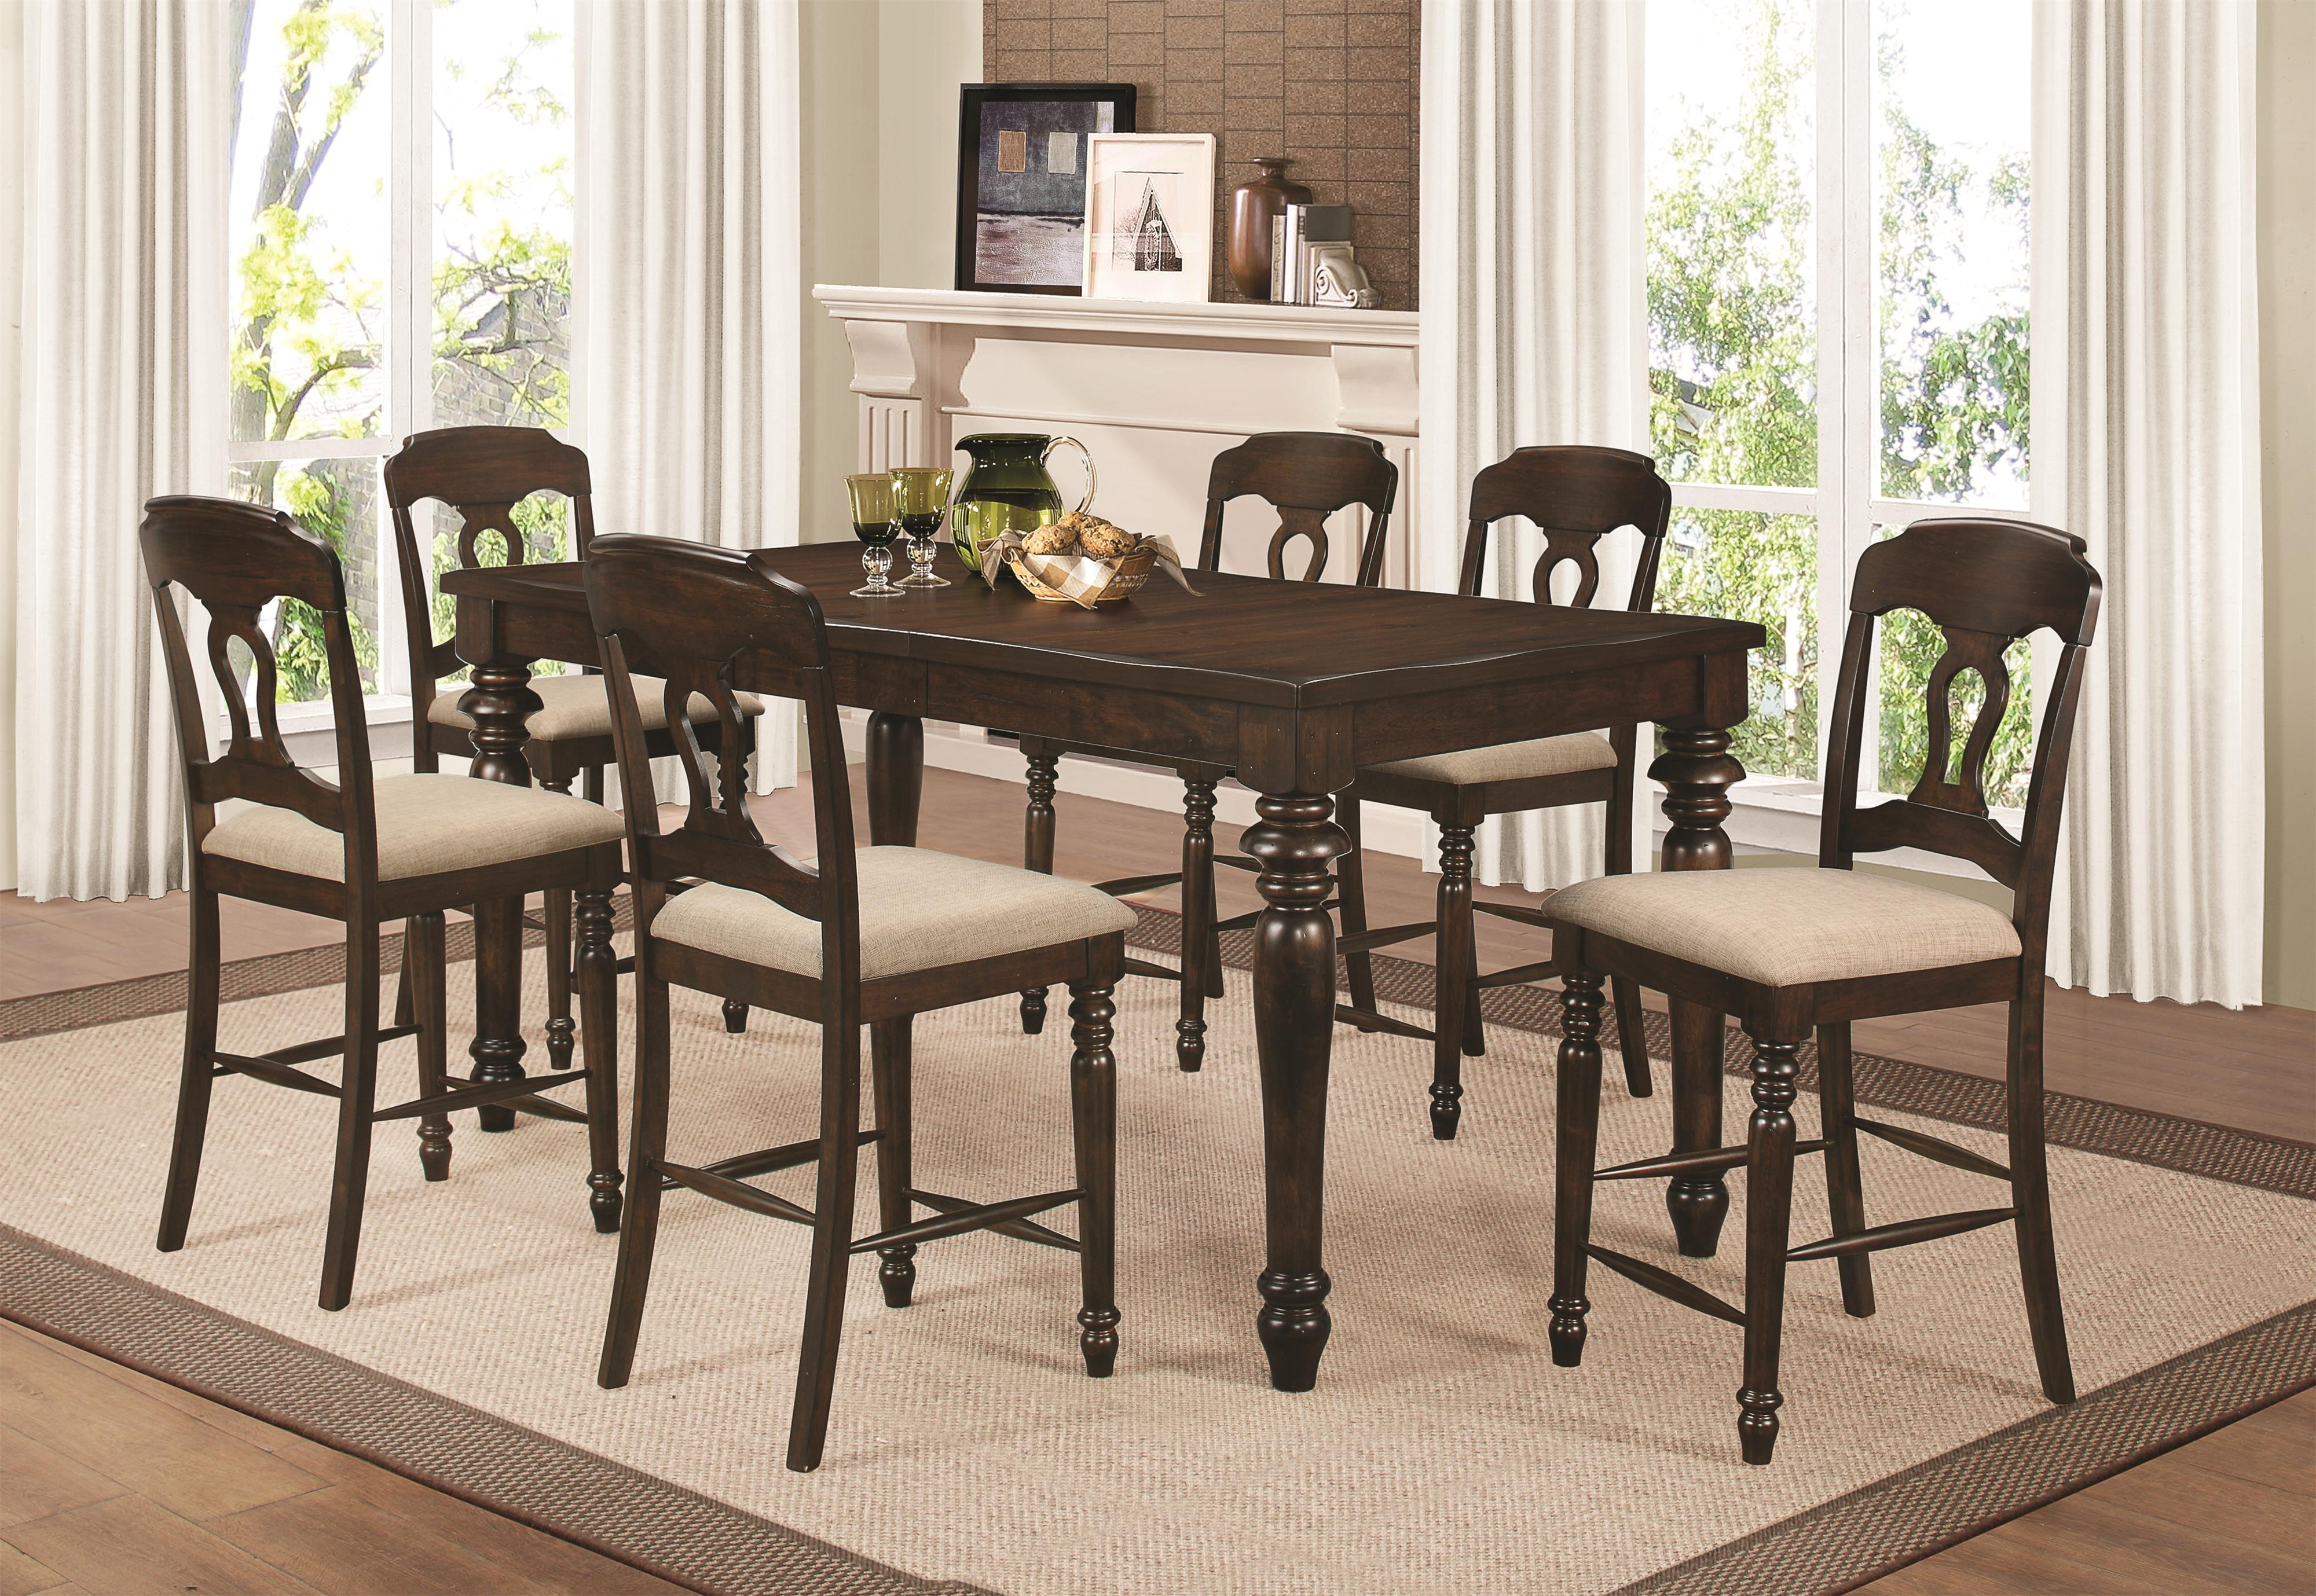 hamilton 7 piece counter height dining set with splat back side chairs